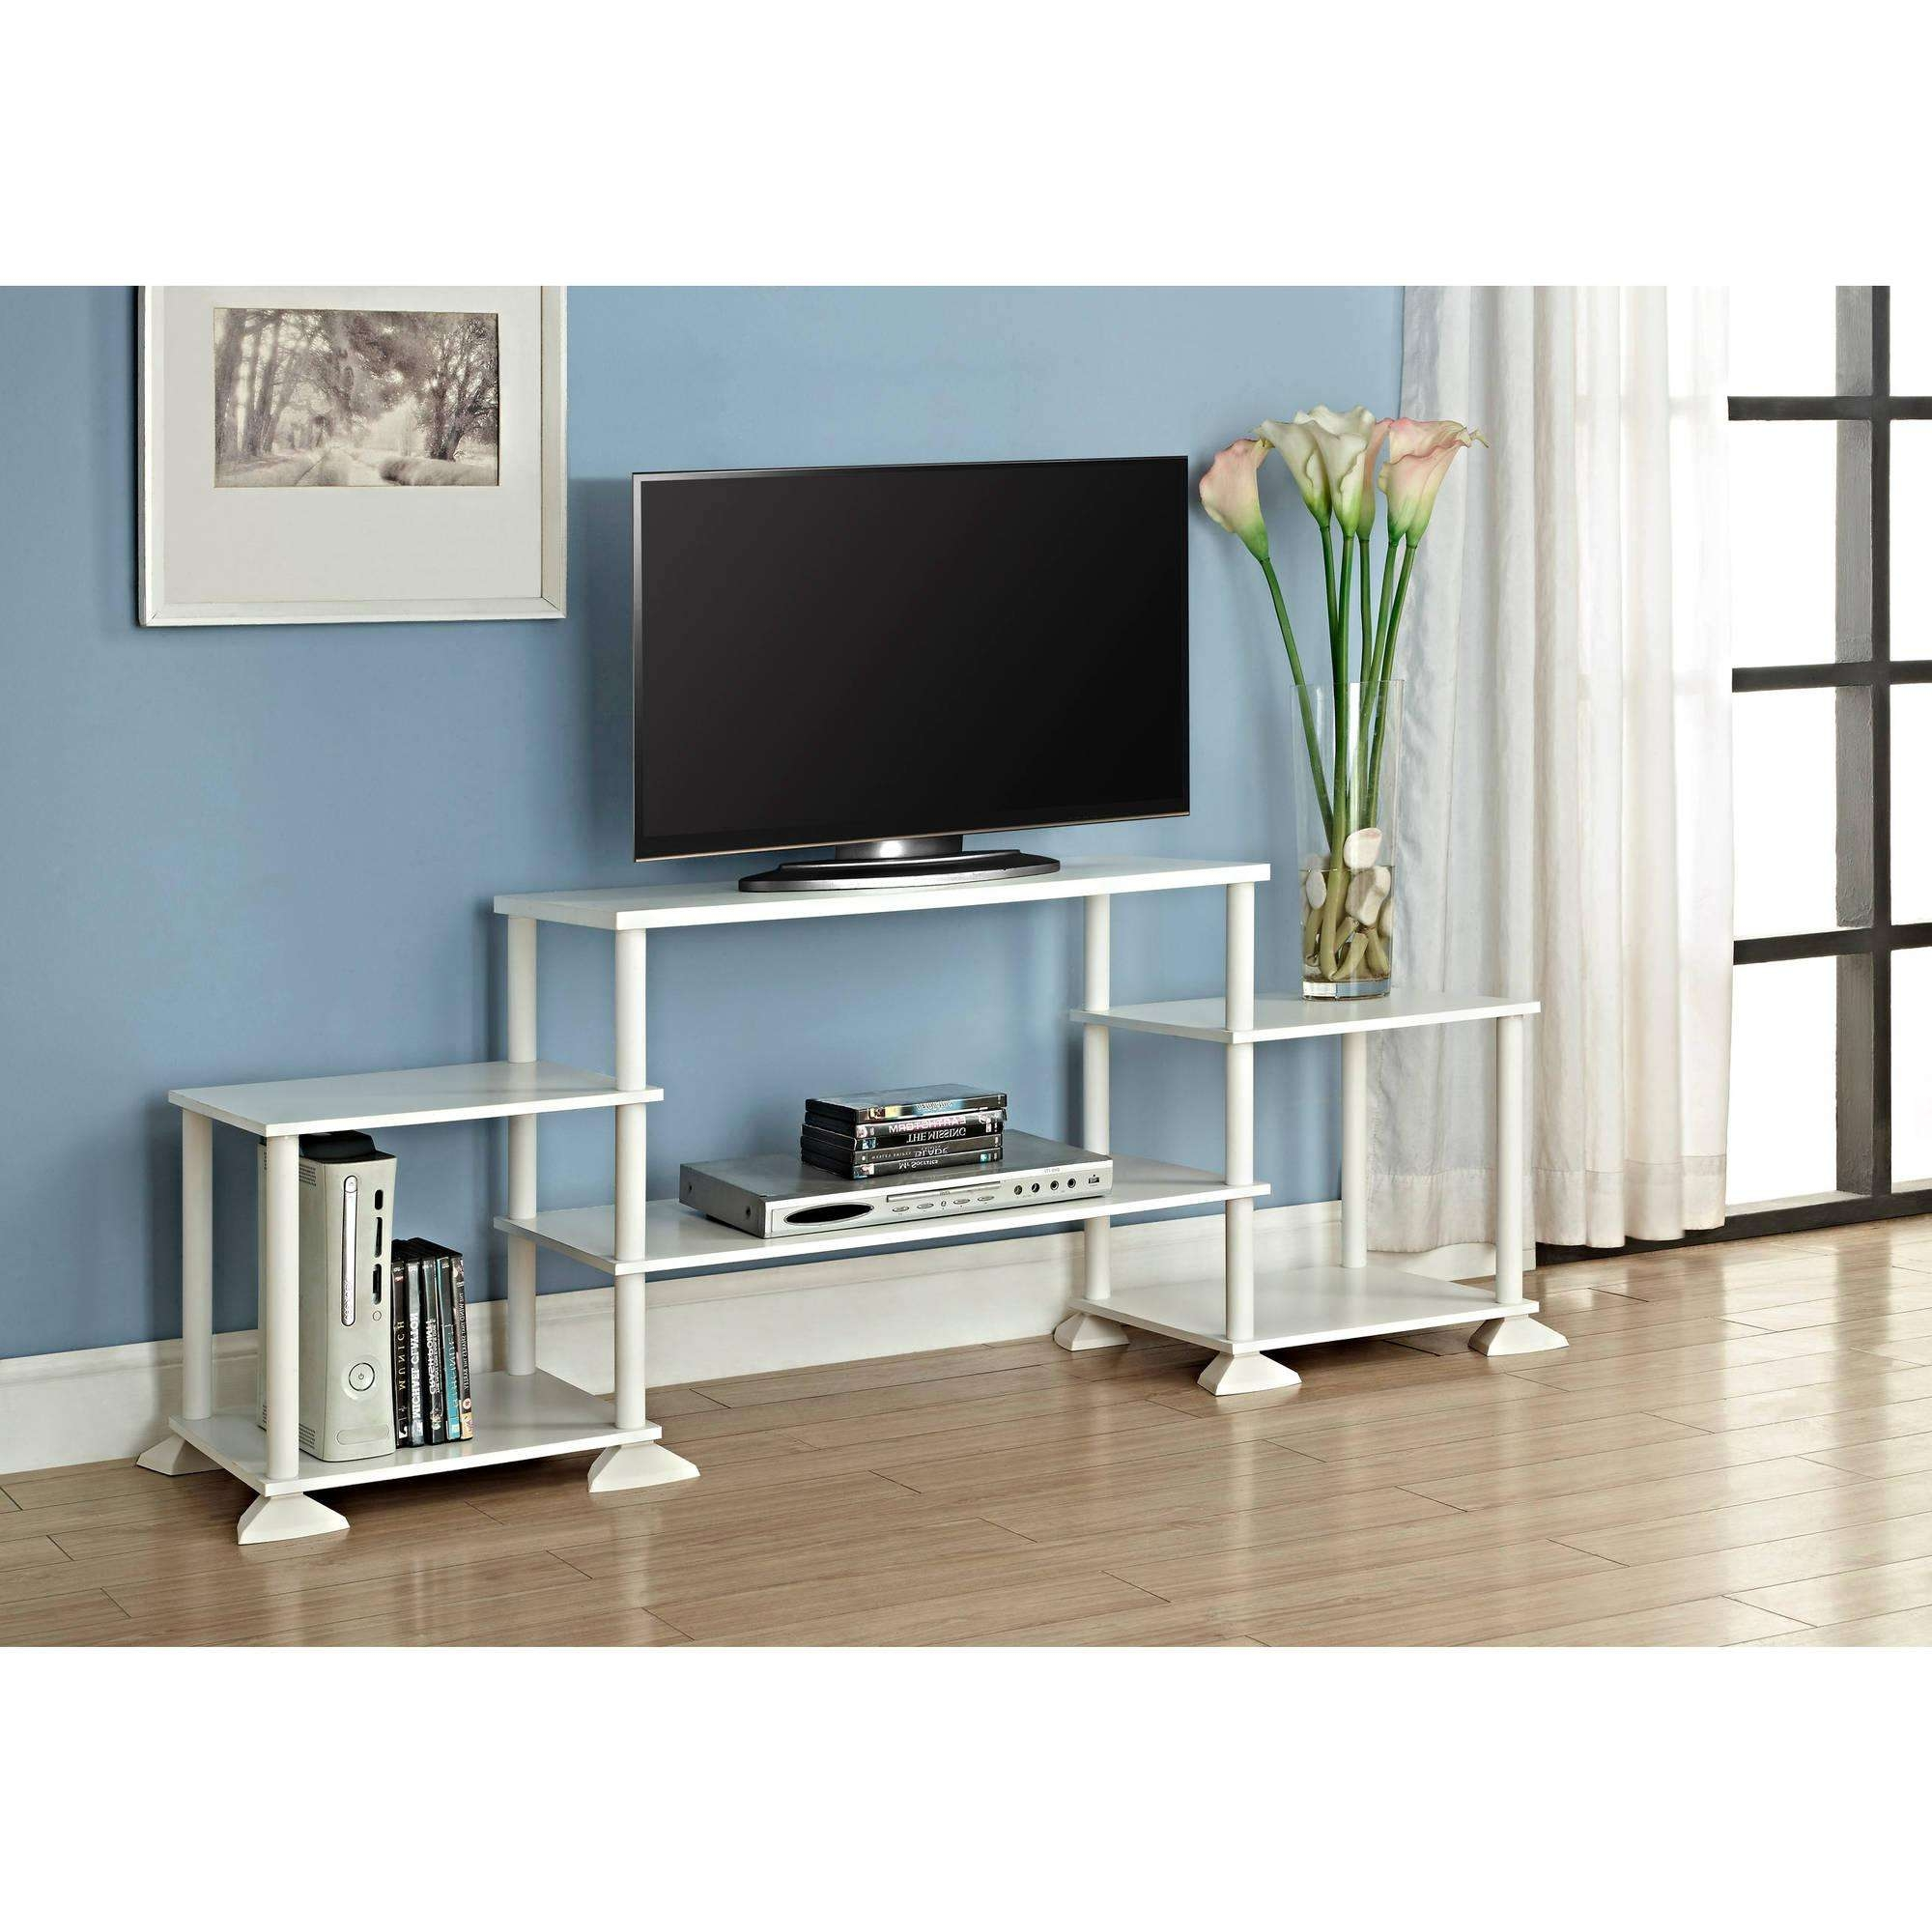 Tv Stand : Corner Tv Standnch Unforgettablemagenspirations Stands Pertaining To Corner Tv Stands 40 Inch (View 11 of 20)